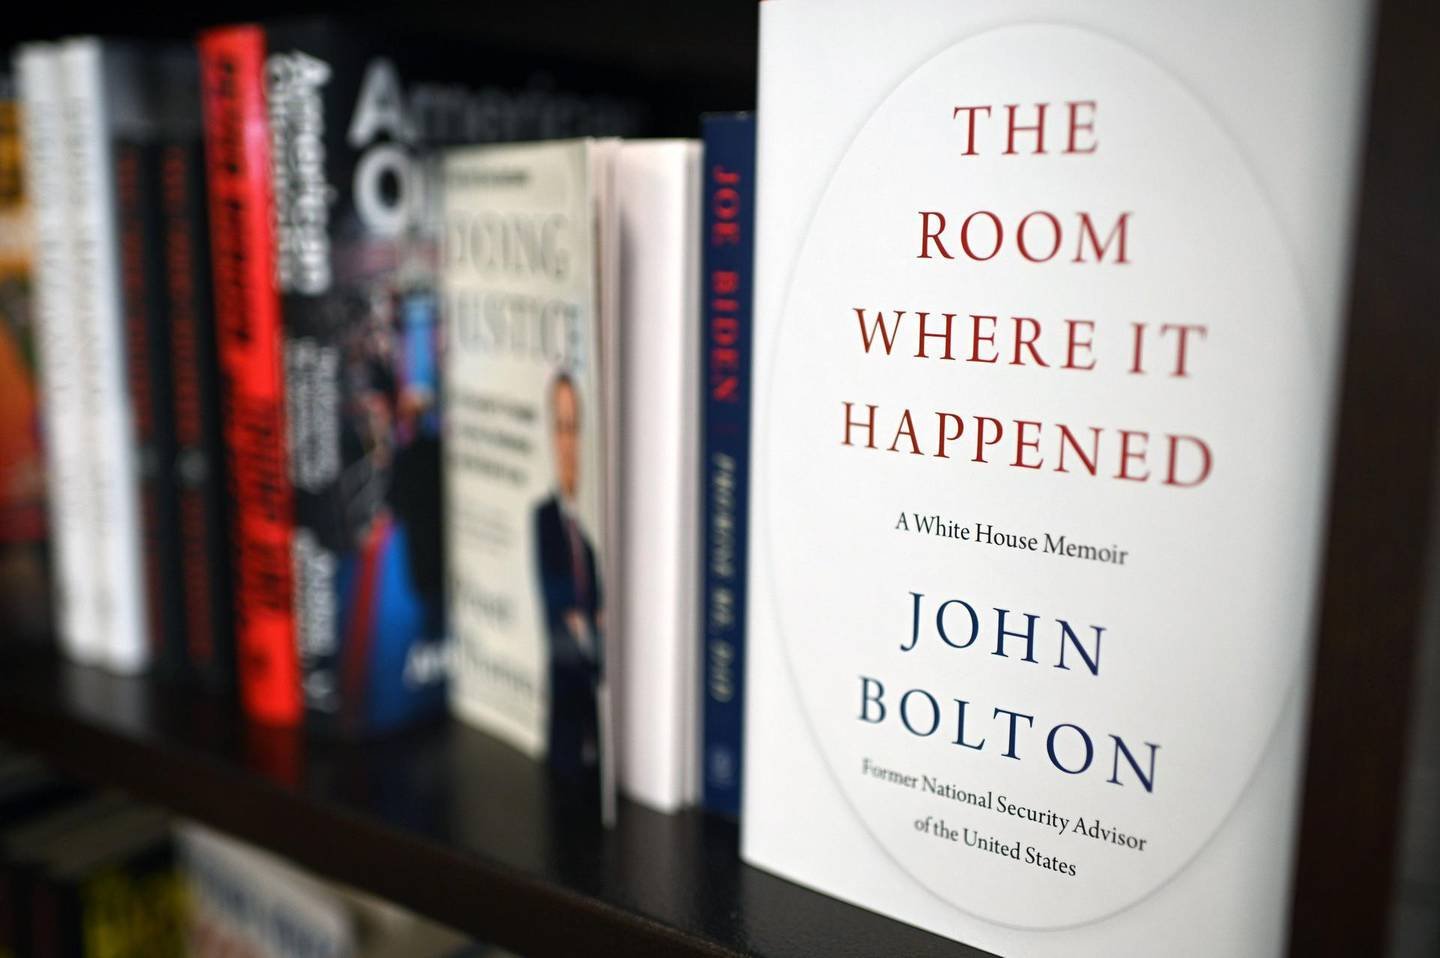 """Copies of the book """"The Room Where it Happened"""" a memoir by former US national security advisor John Bolton are for sale at Barnes & Noble in Glendale, California on June 23, 2020.     The Trump administration tried unsuccessfully to block publication of Bolton's book claiming it contained classified national security information.Former US national security advisor John Bolton said Sunday he thinks North Korean leader Kim Jong Un """"gets a huge laugh"""" over US counterpart Donald Trump's perception of their relationship. Bolton spoke to ABC News for his first interview ahead of the Tuesday release of his tell-all book, which contains many damning allegations against Trump.  / AFP / Robyn Beck"""